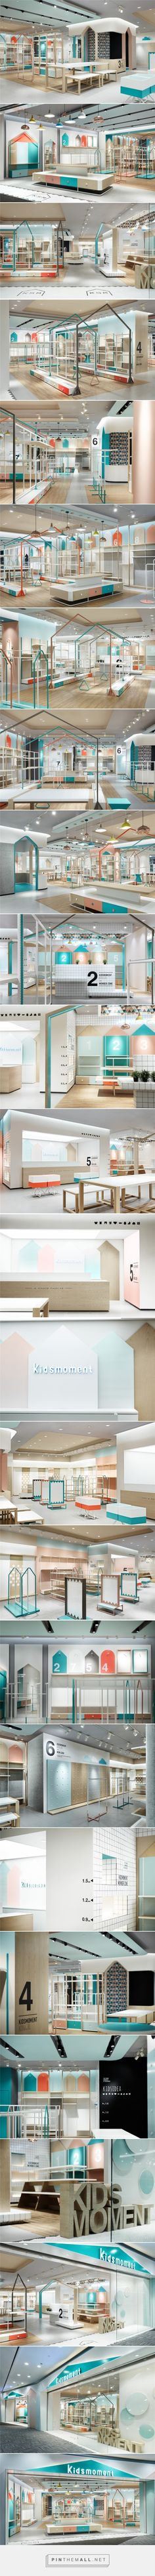 Kidsmoment by RIGIdesign, Wuhan – China » Retail Design Blog... - a grouped images picture - Pin Them All